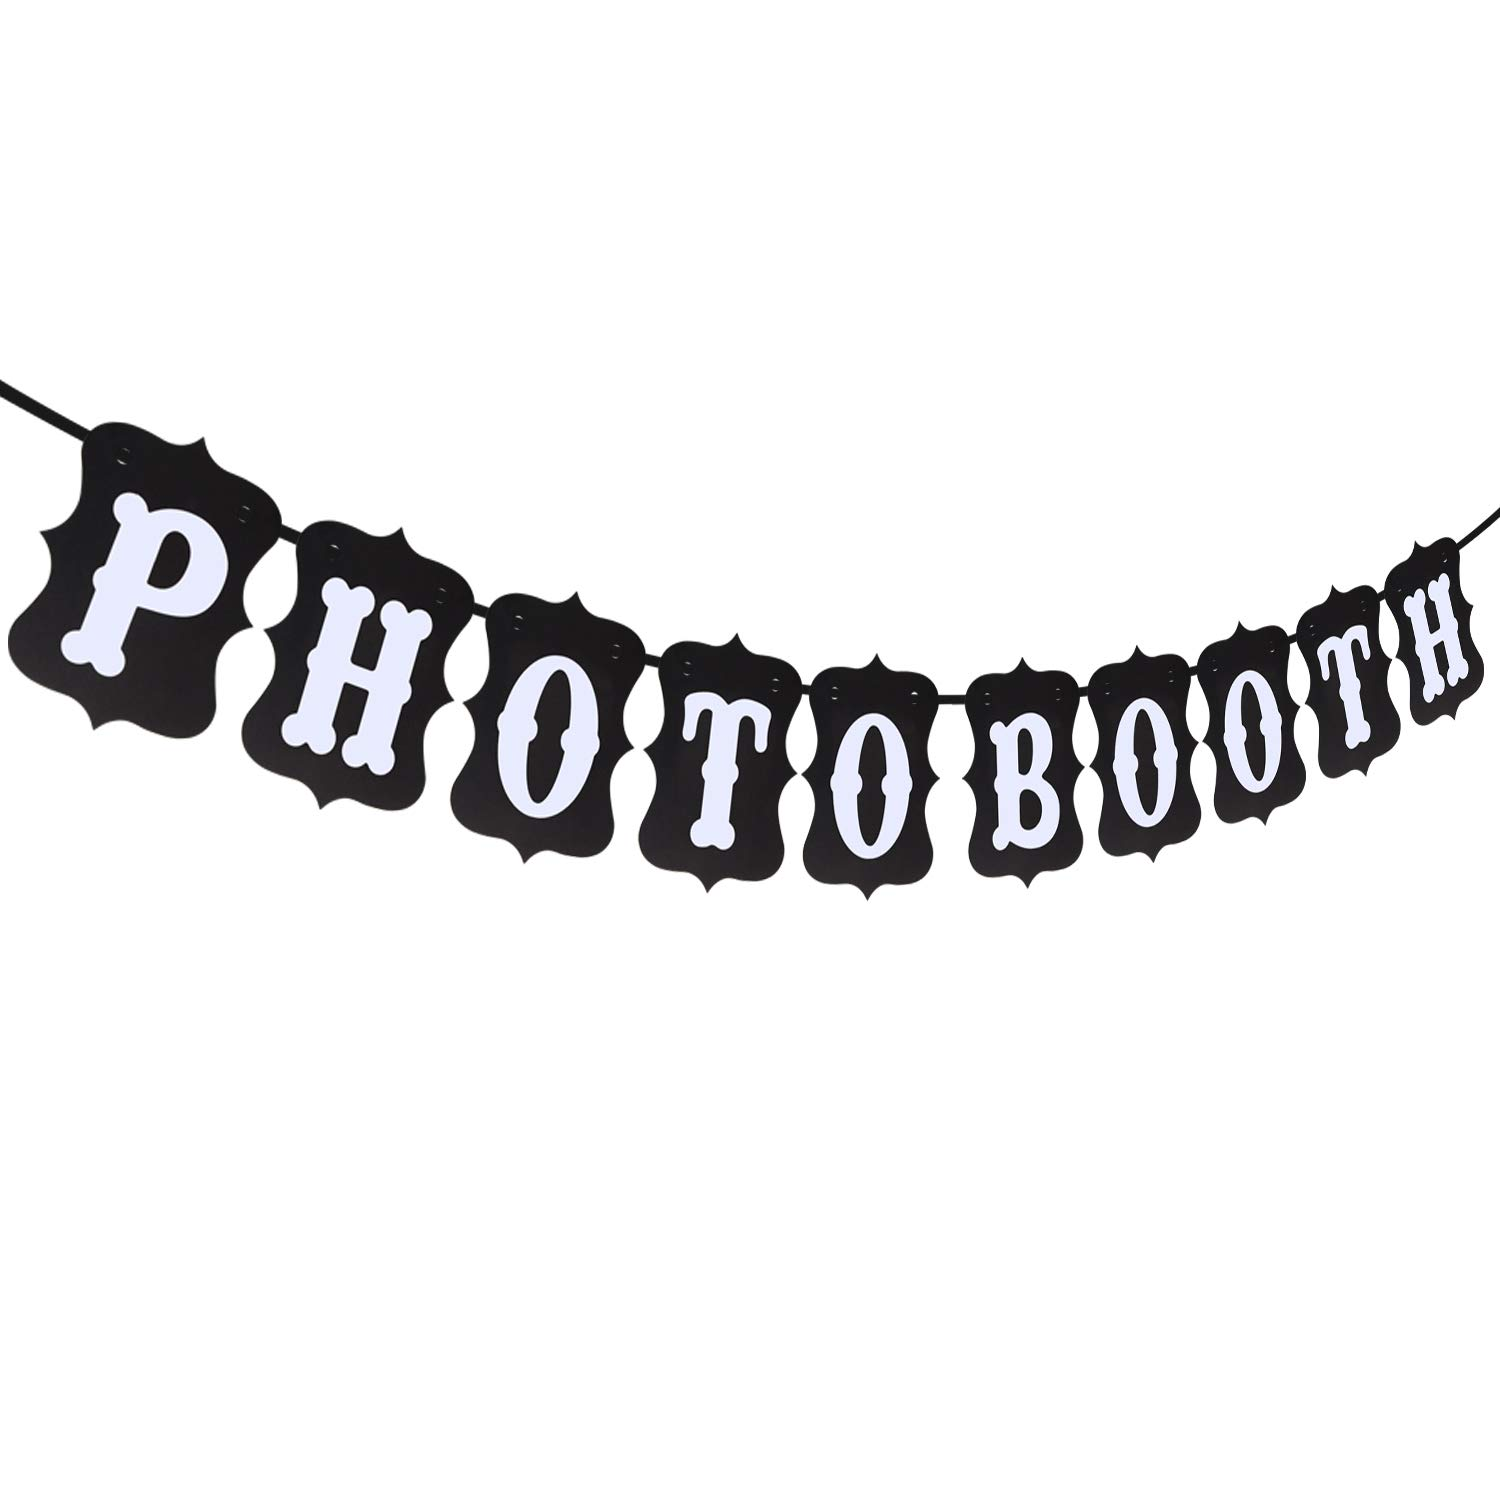 Pixnor Reusable Wedding Bunting Banner Photo Booth Garland Props Free Shipping